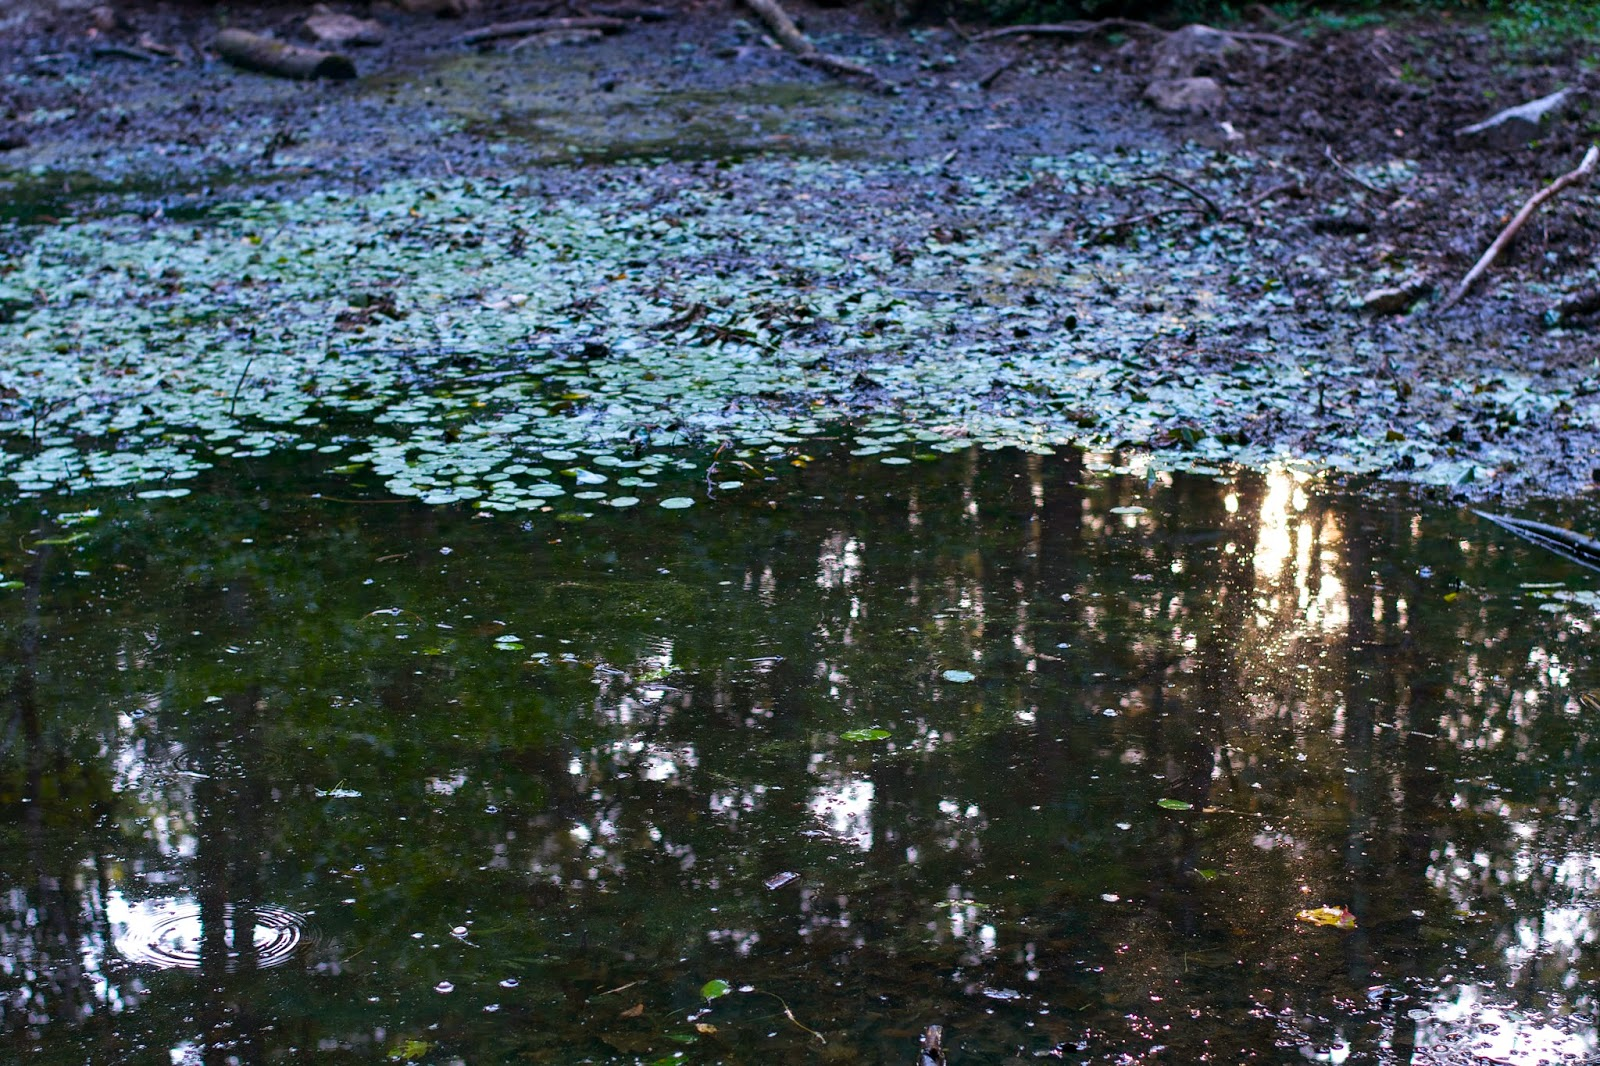 Reflection in a vernal pond